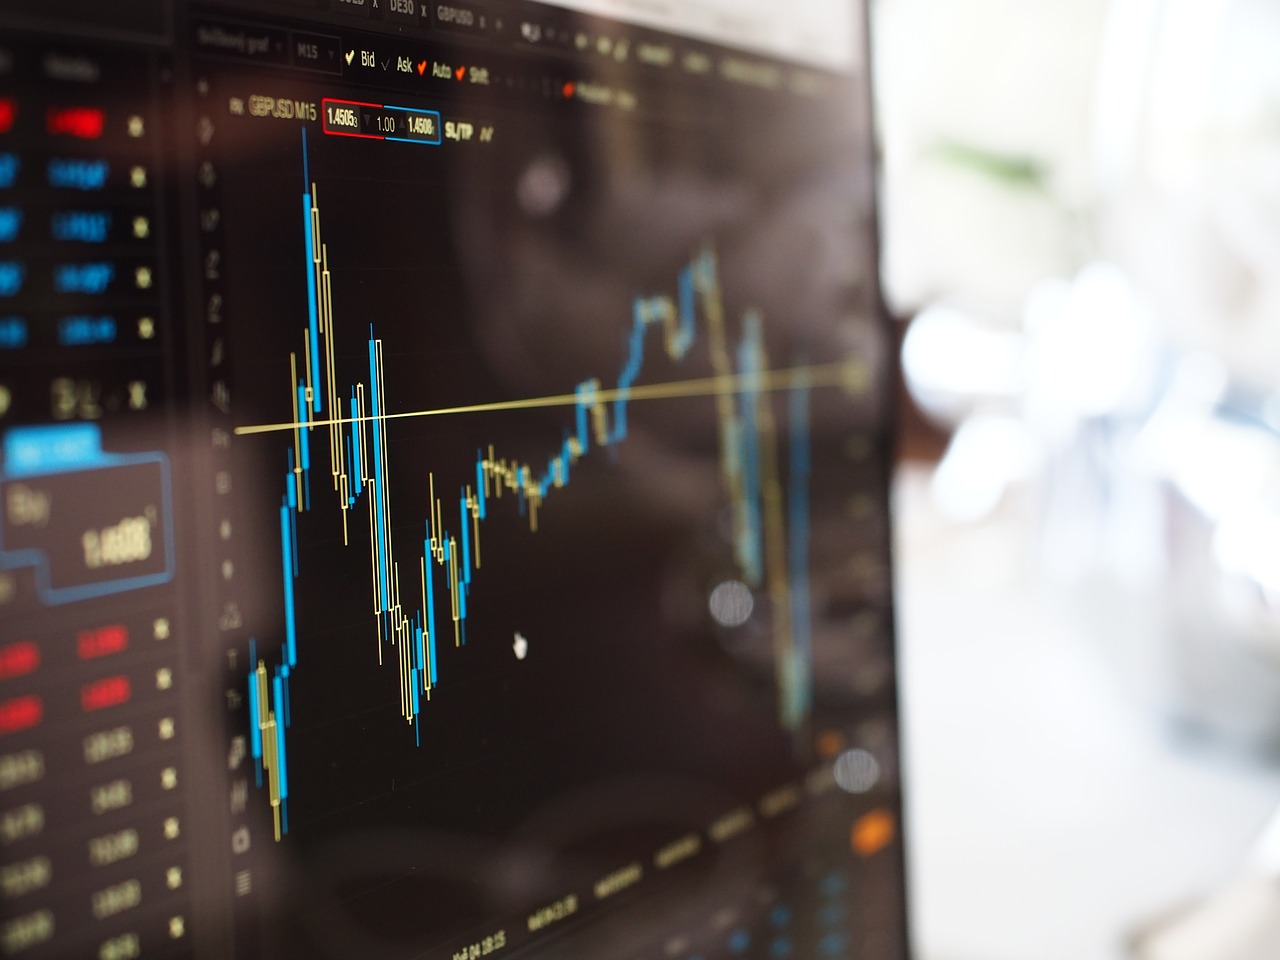 5 courses help to learn how to trade